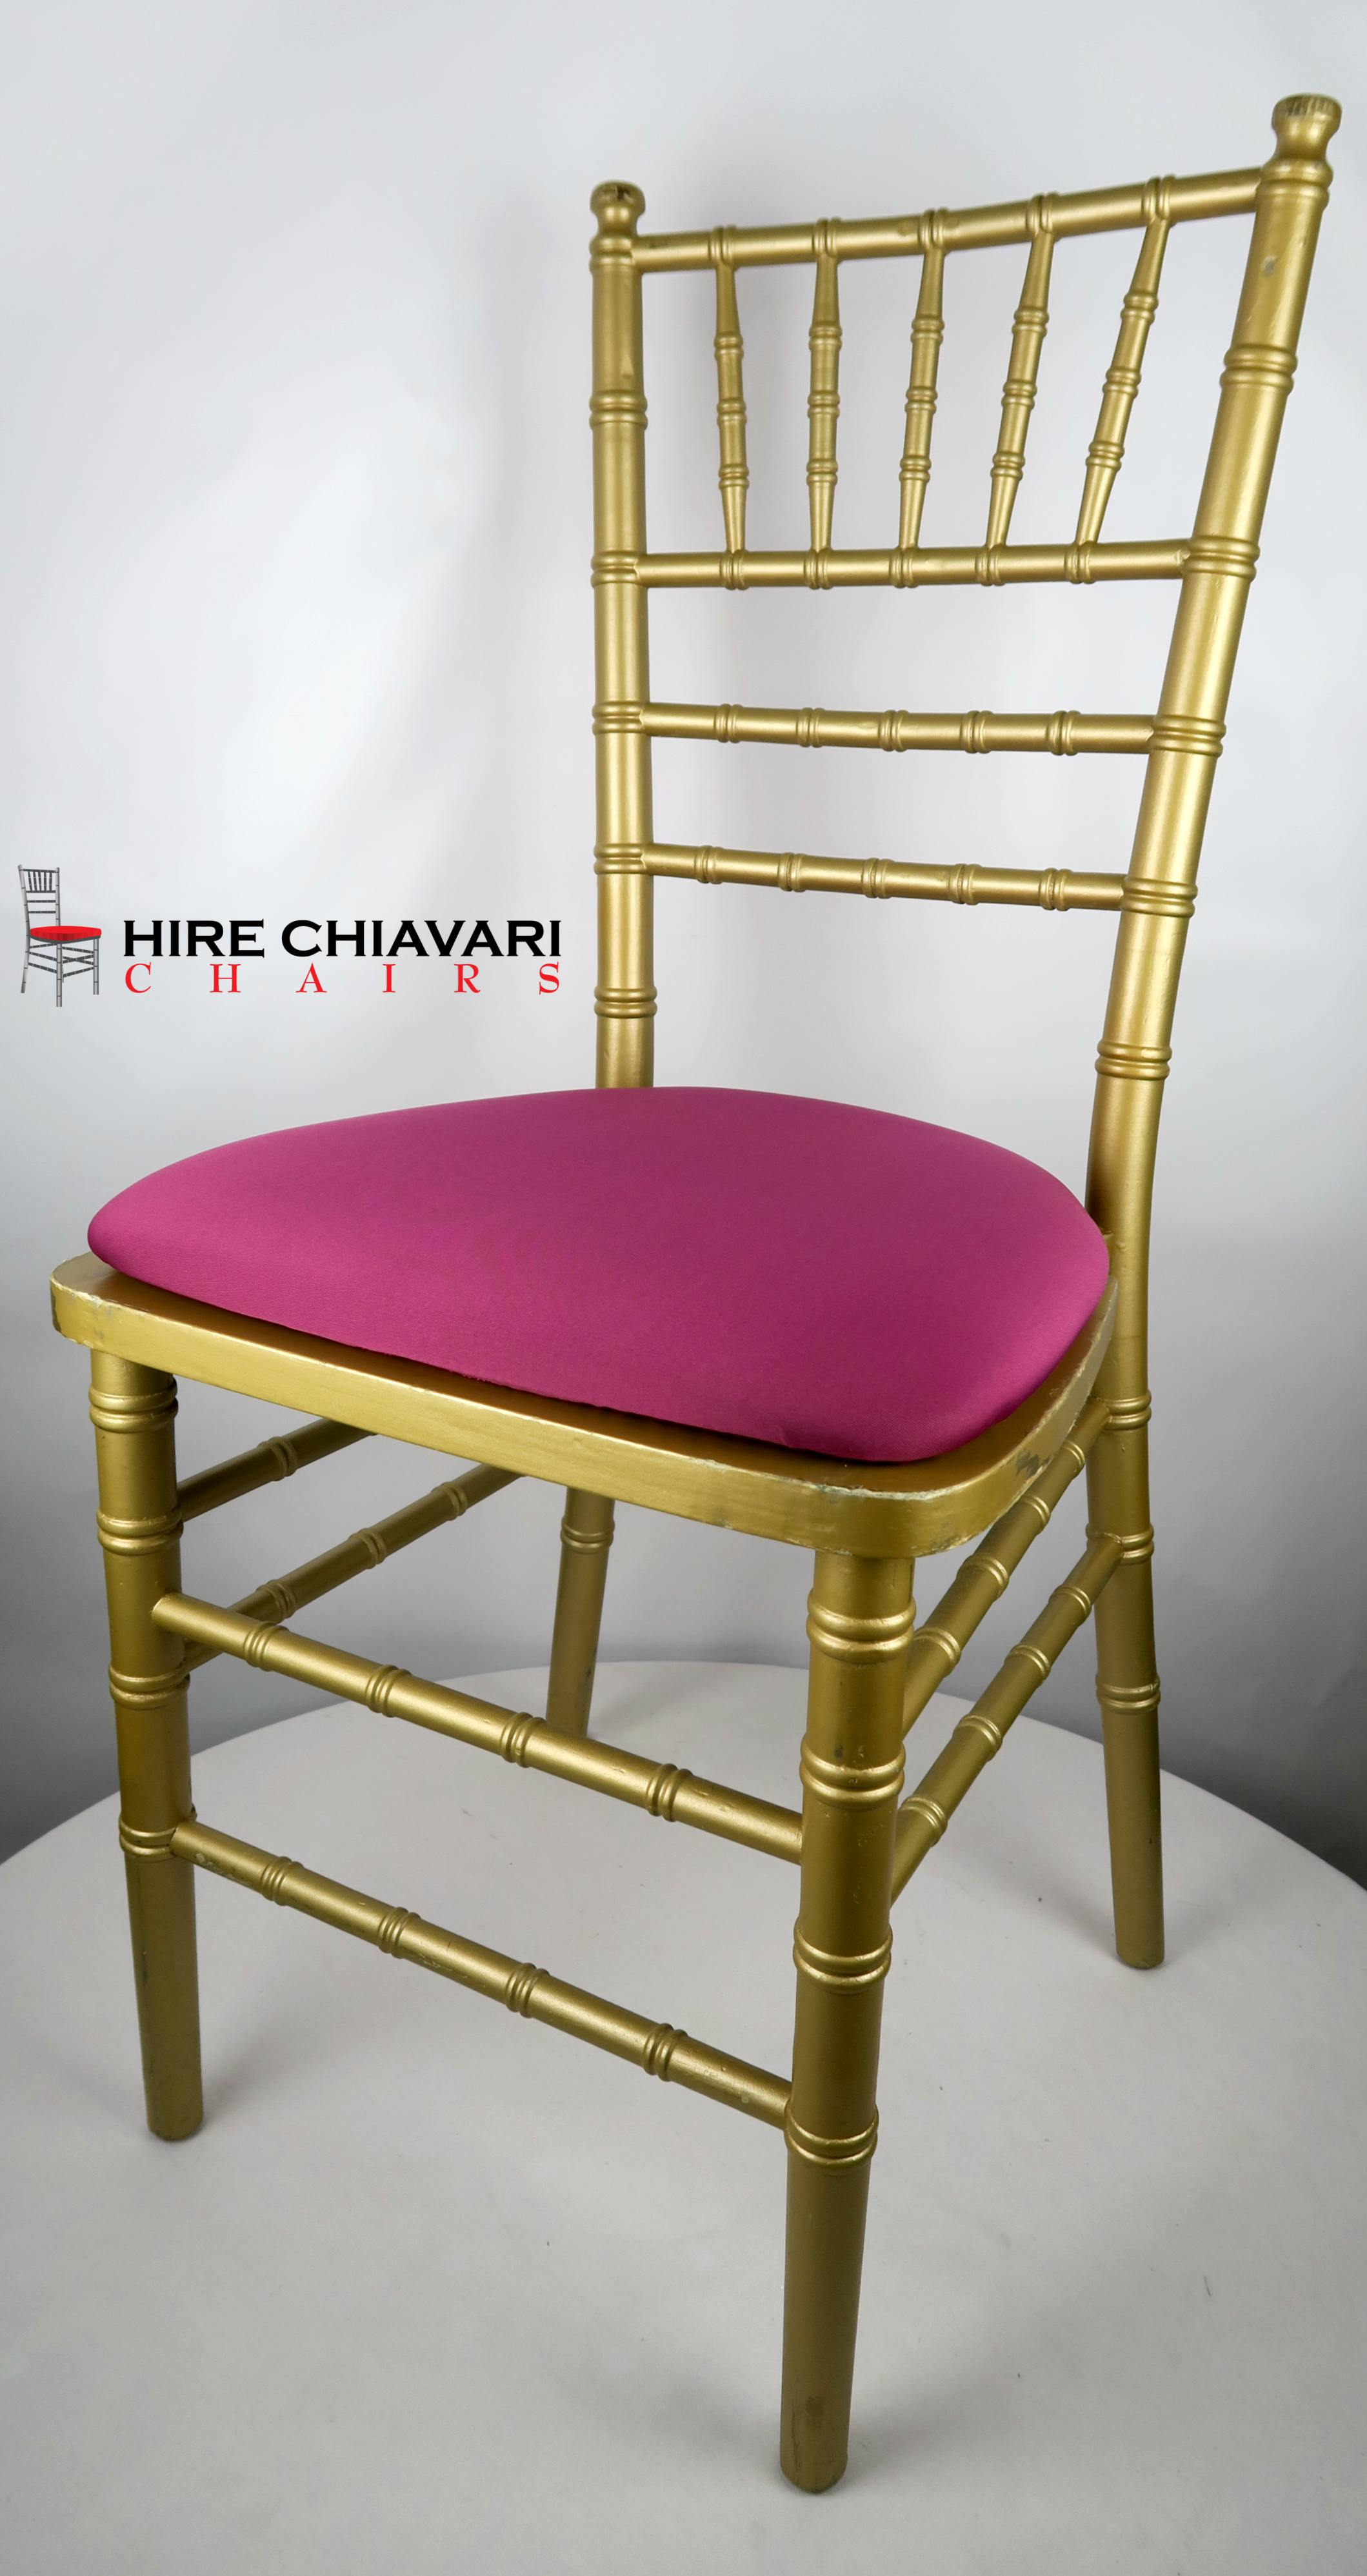 Home Hire Chiavari Chairs Chiavari Chair Hire